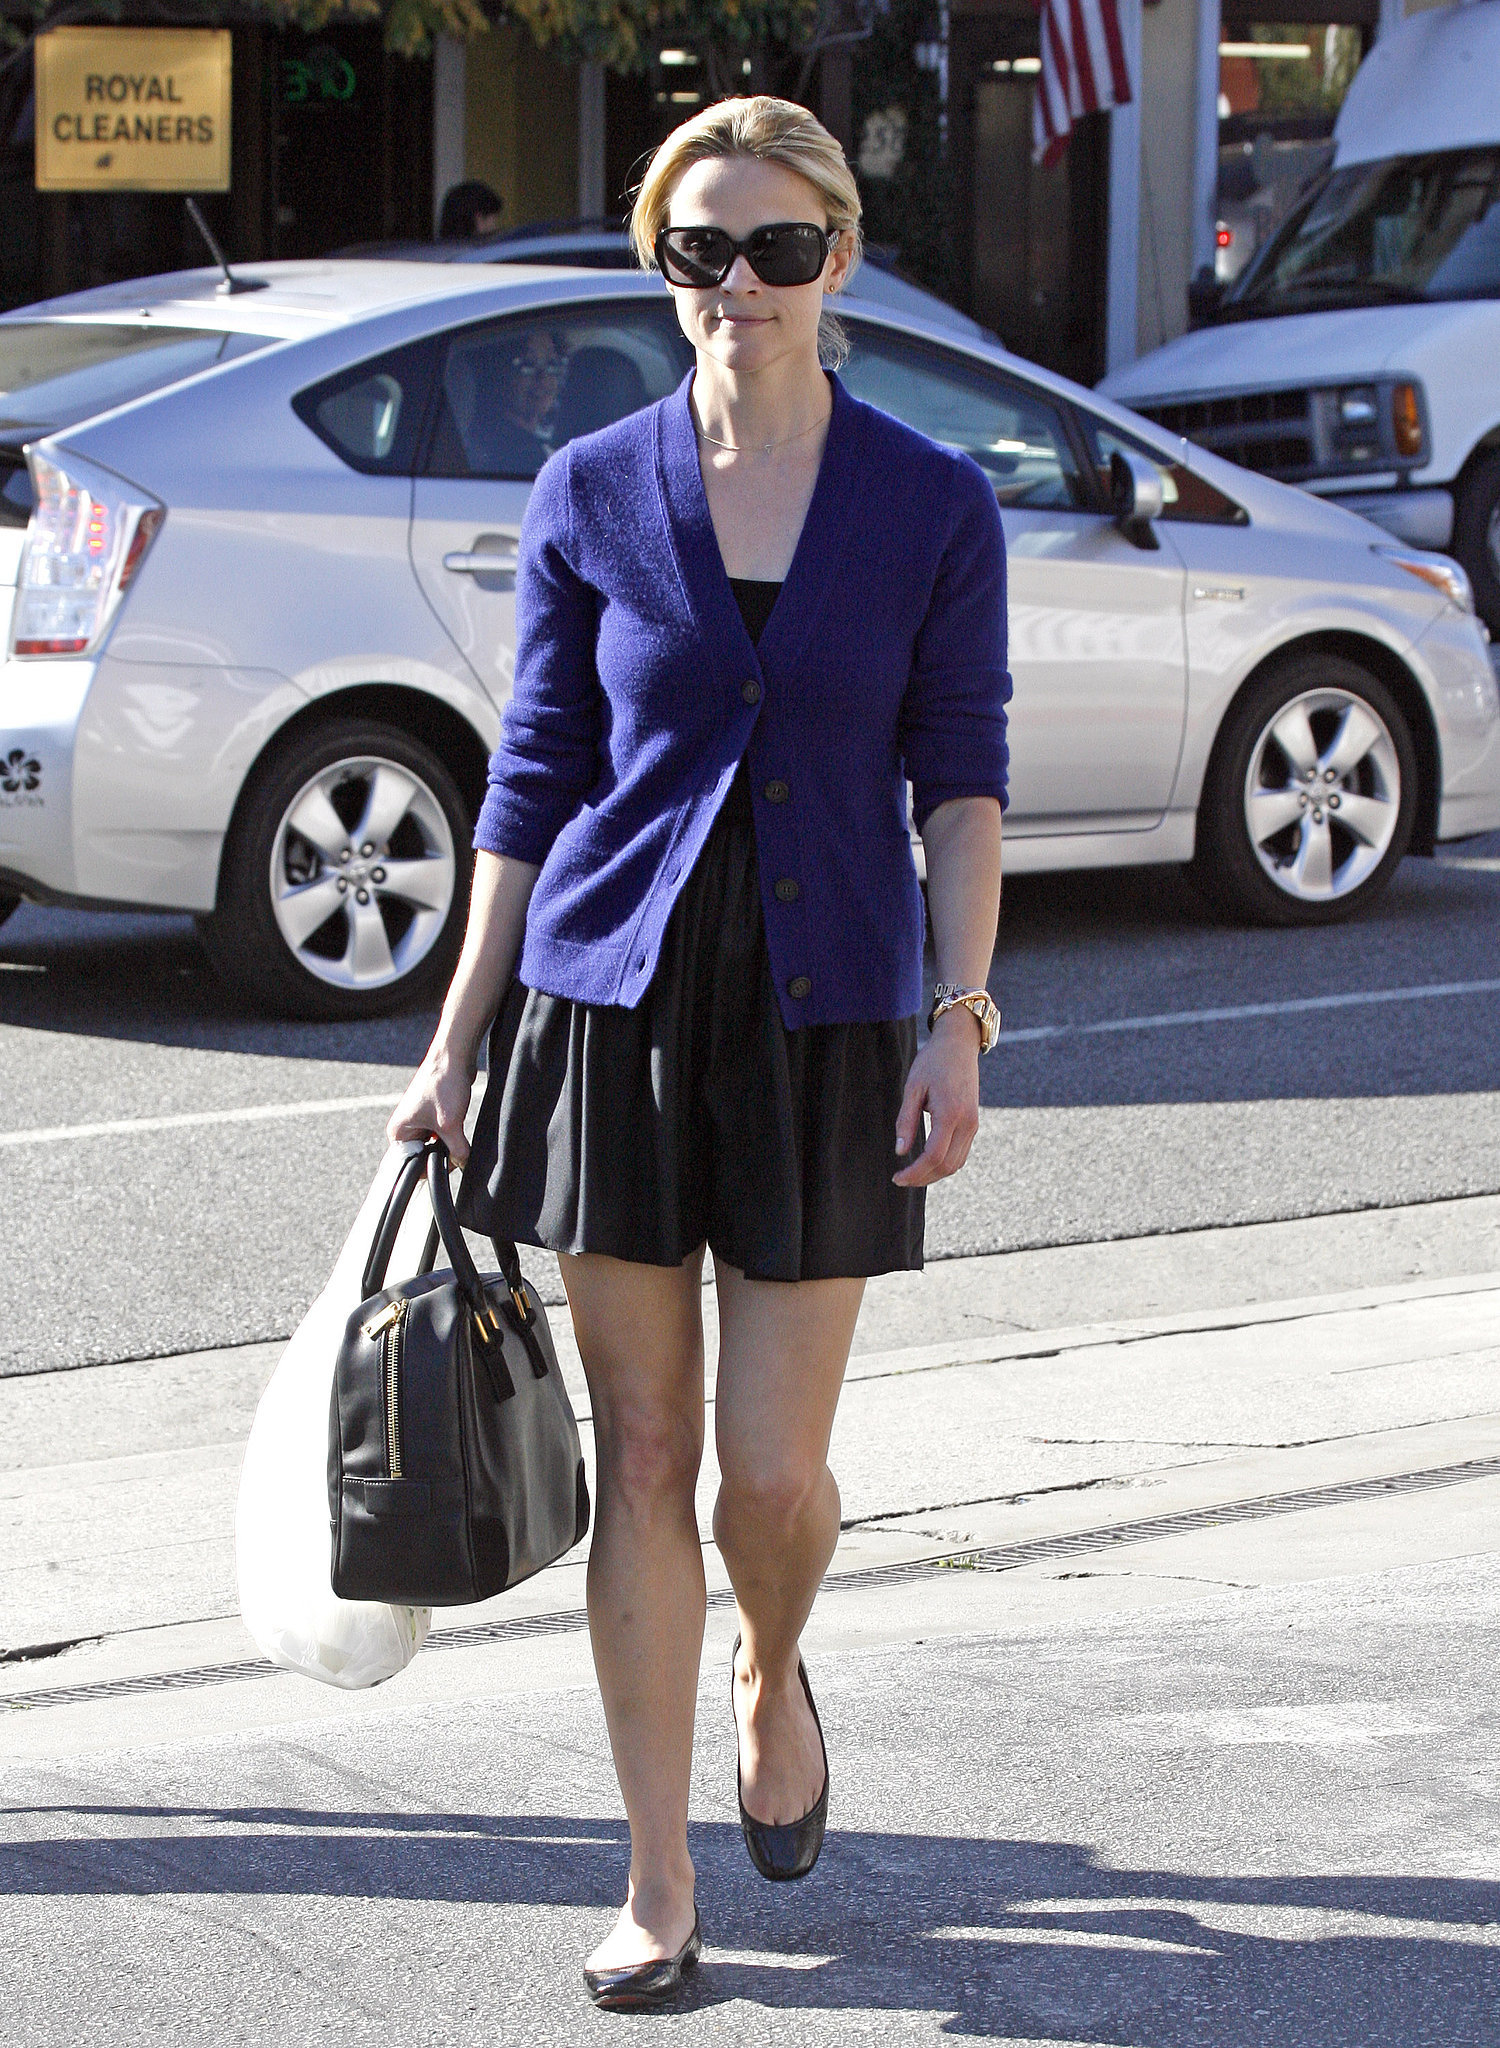 Reese Witherspoon in Black Dress and Navy Blazer